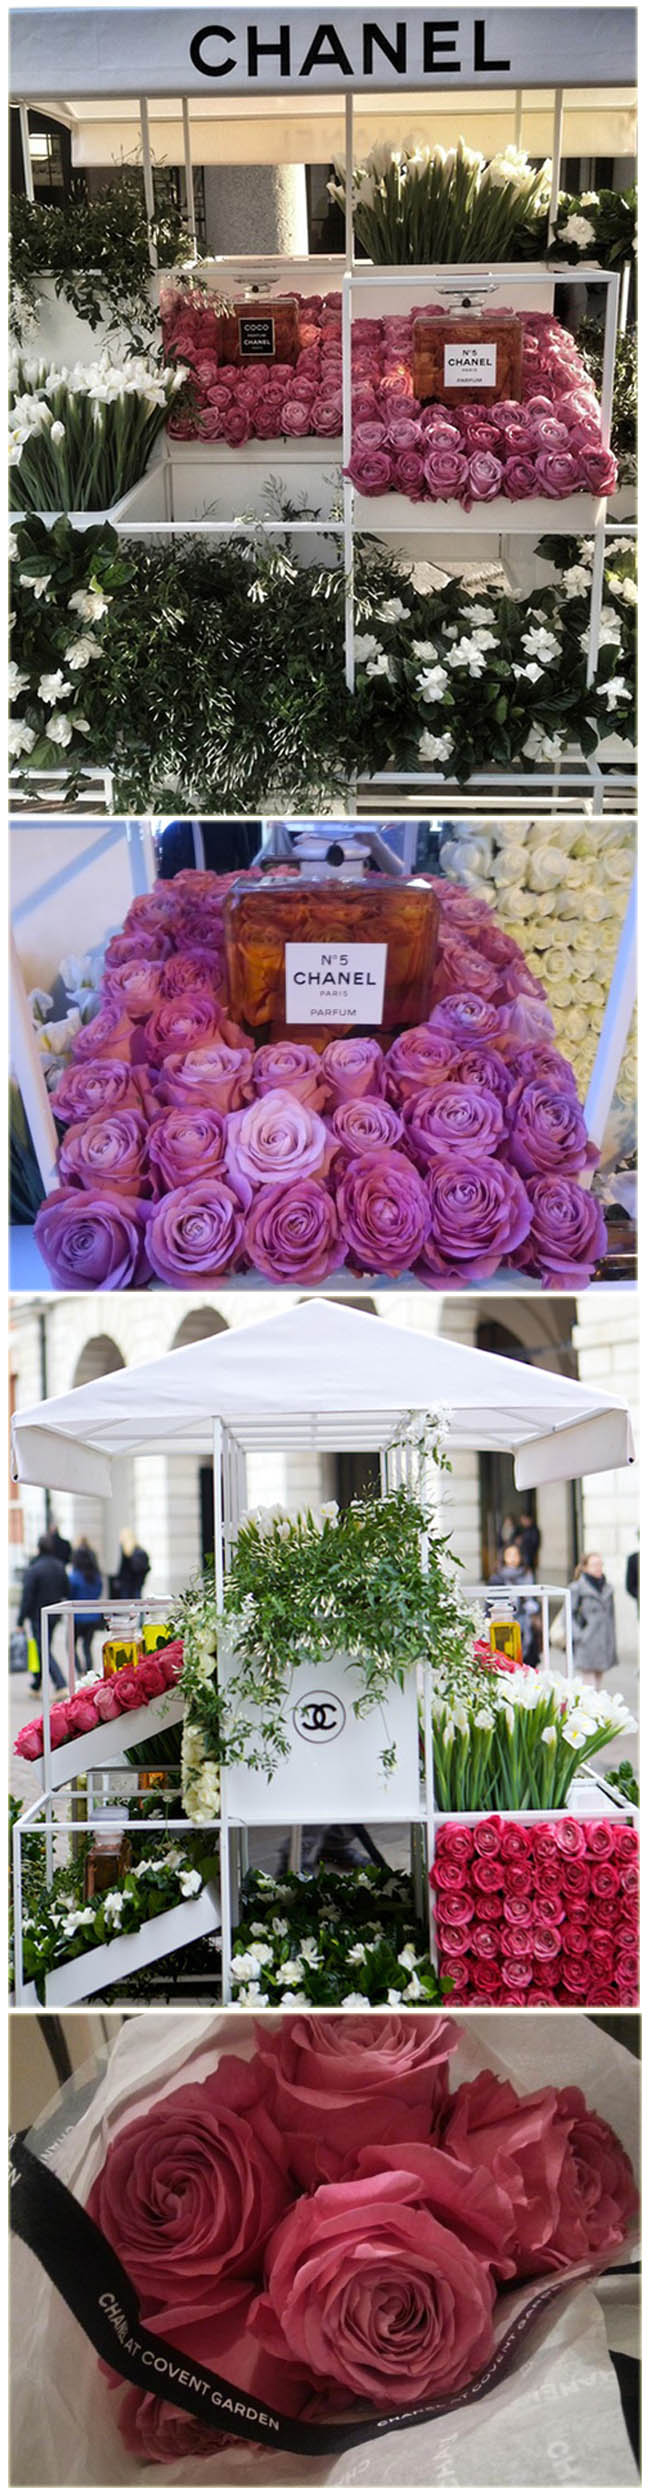 d4f8e0ad3 chanel, chanel dia das maes, pop up store chanel flowers, chanel perfumes,